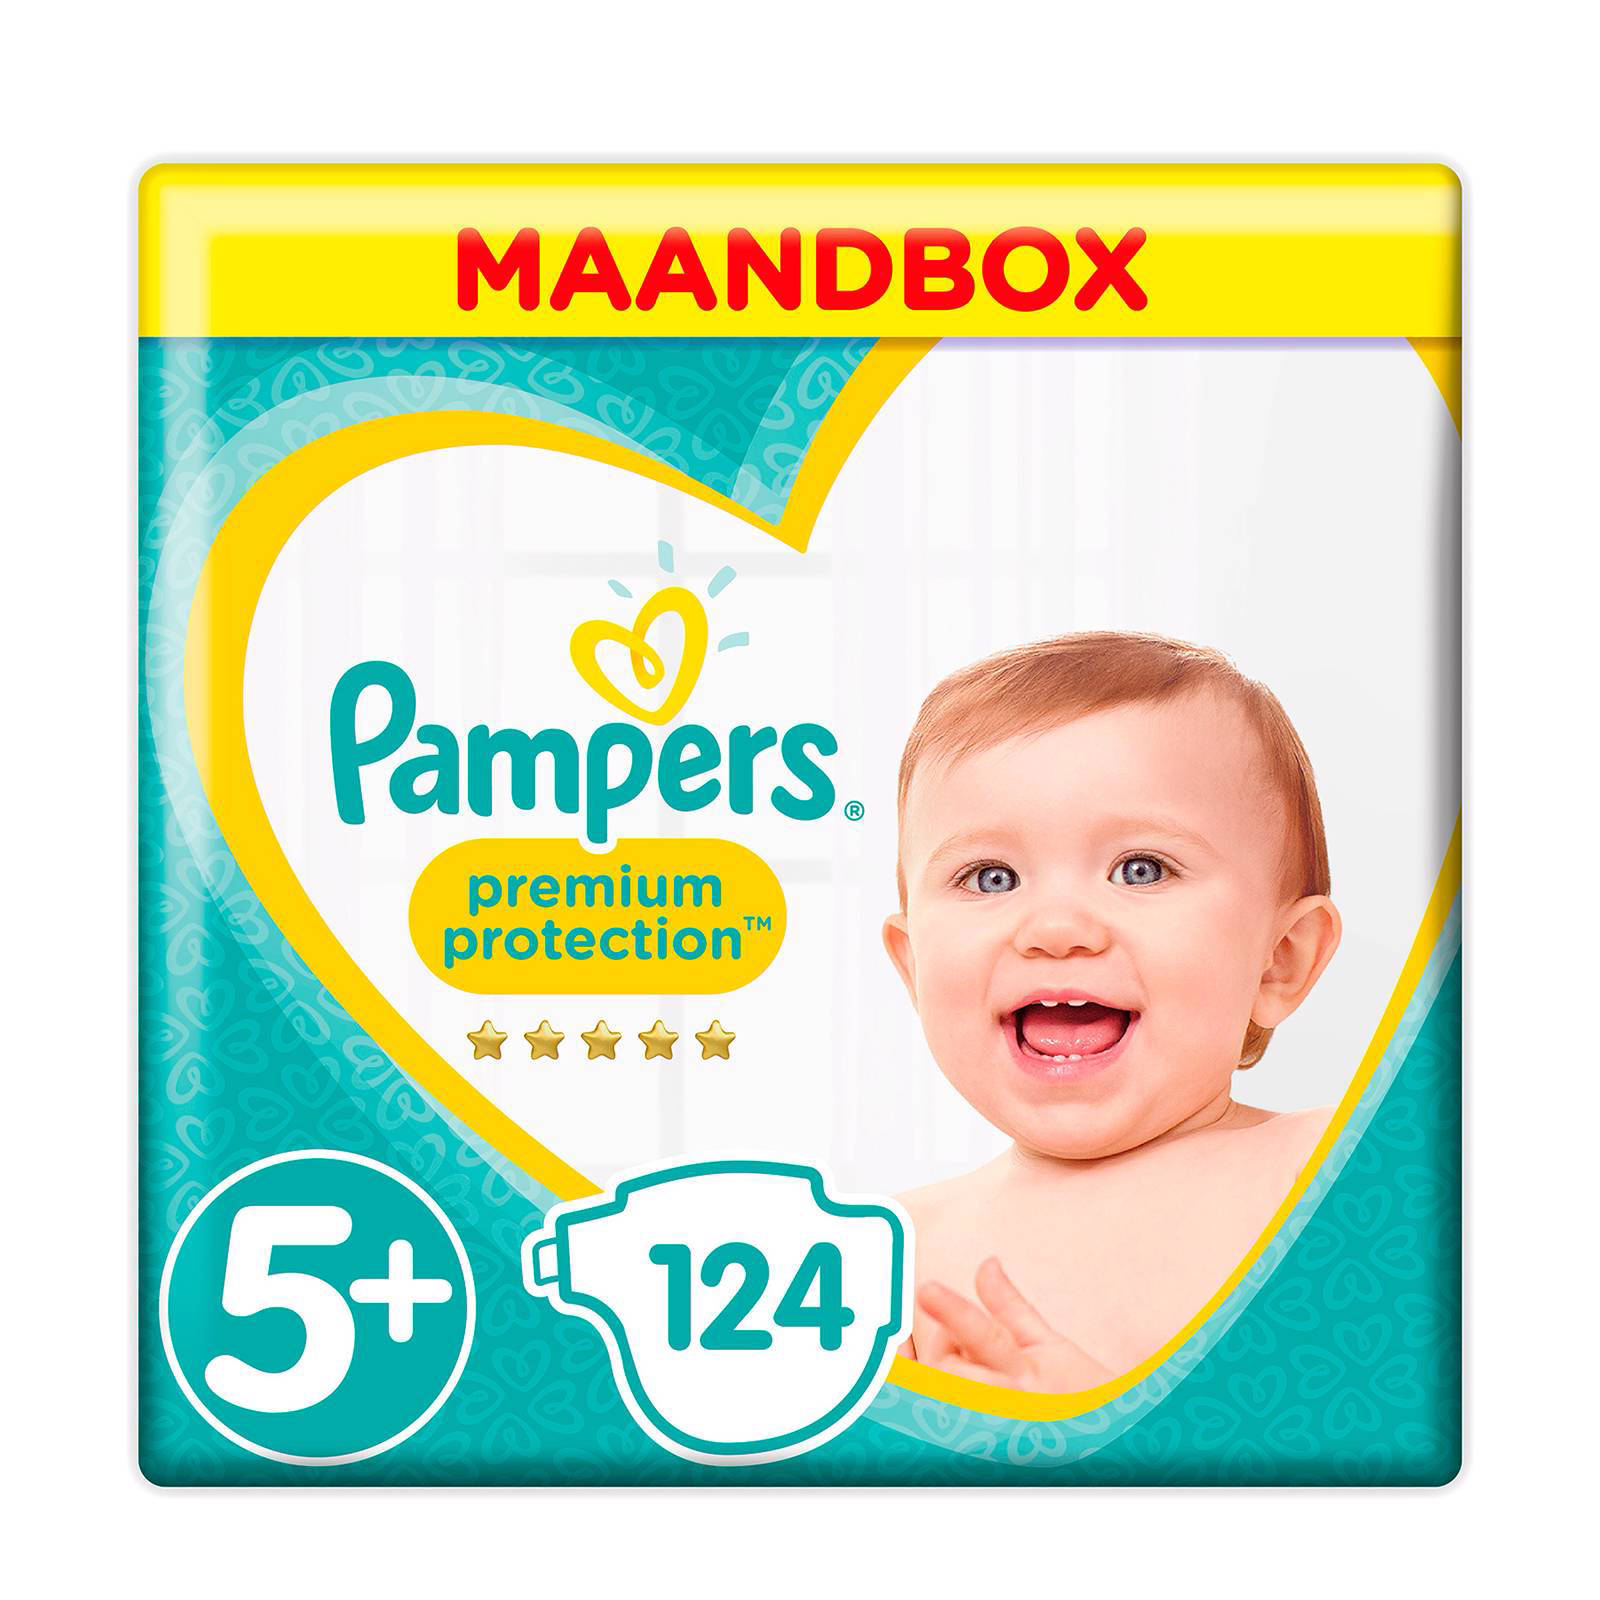 Pampers Premium Protection maandbox maat 5+ (12-17 kg) 124 luiers